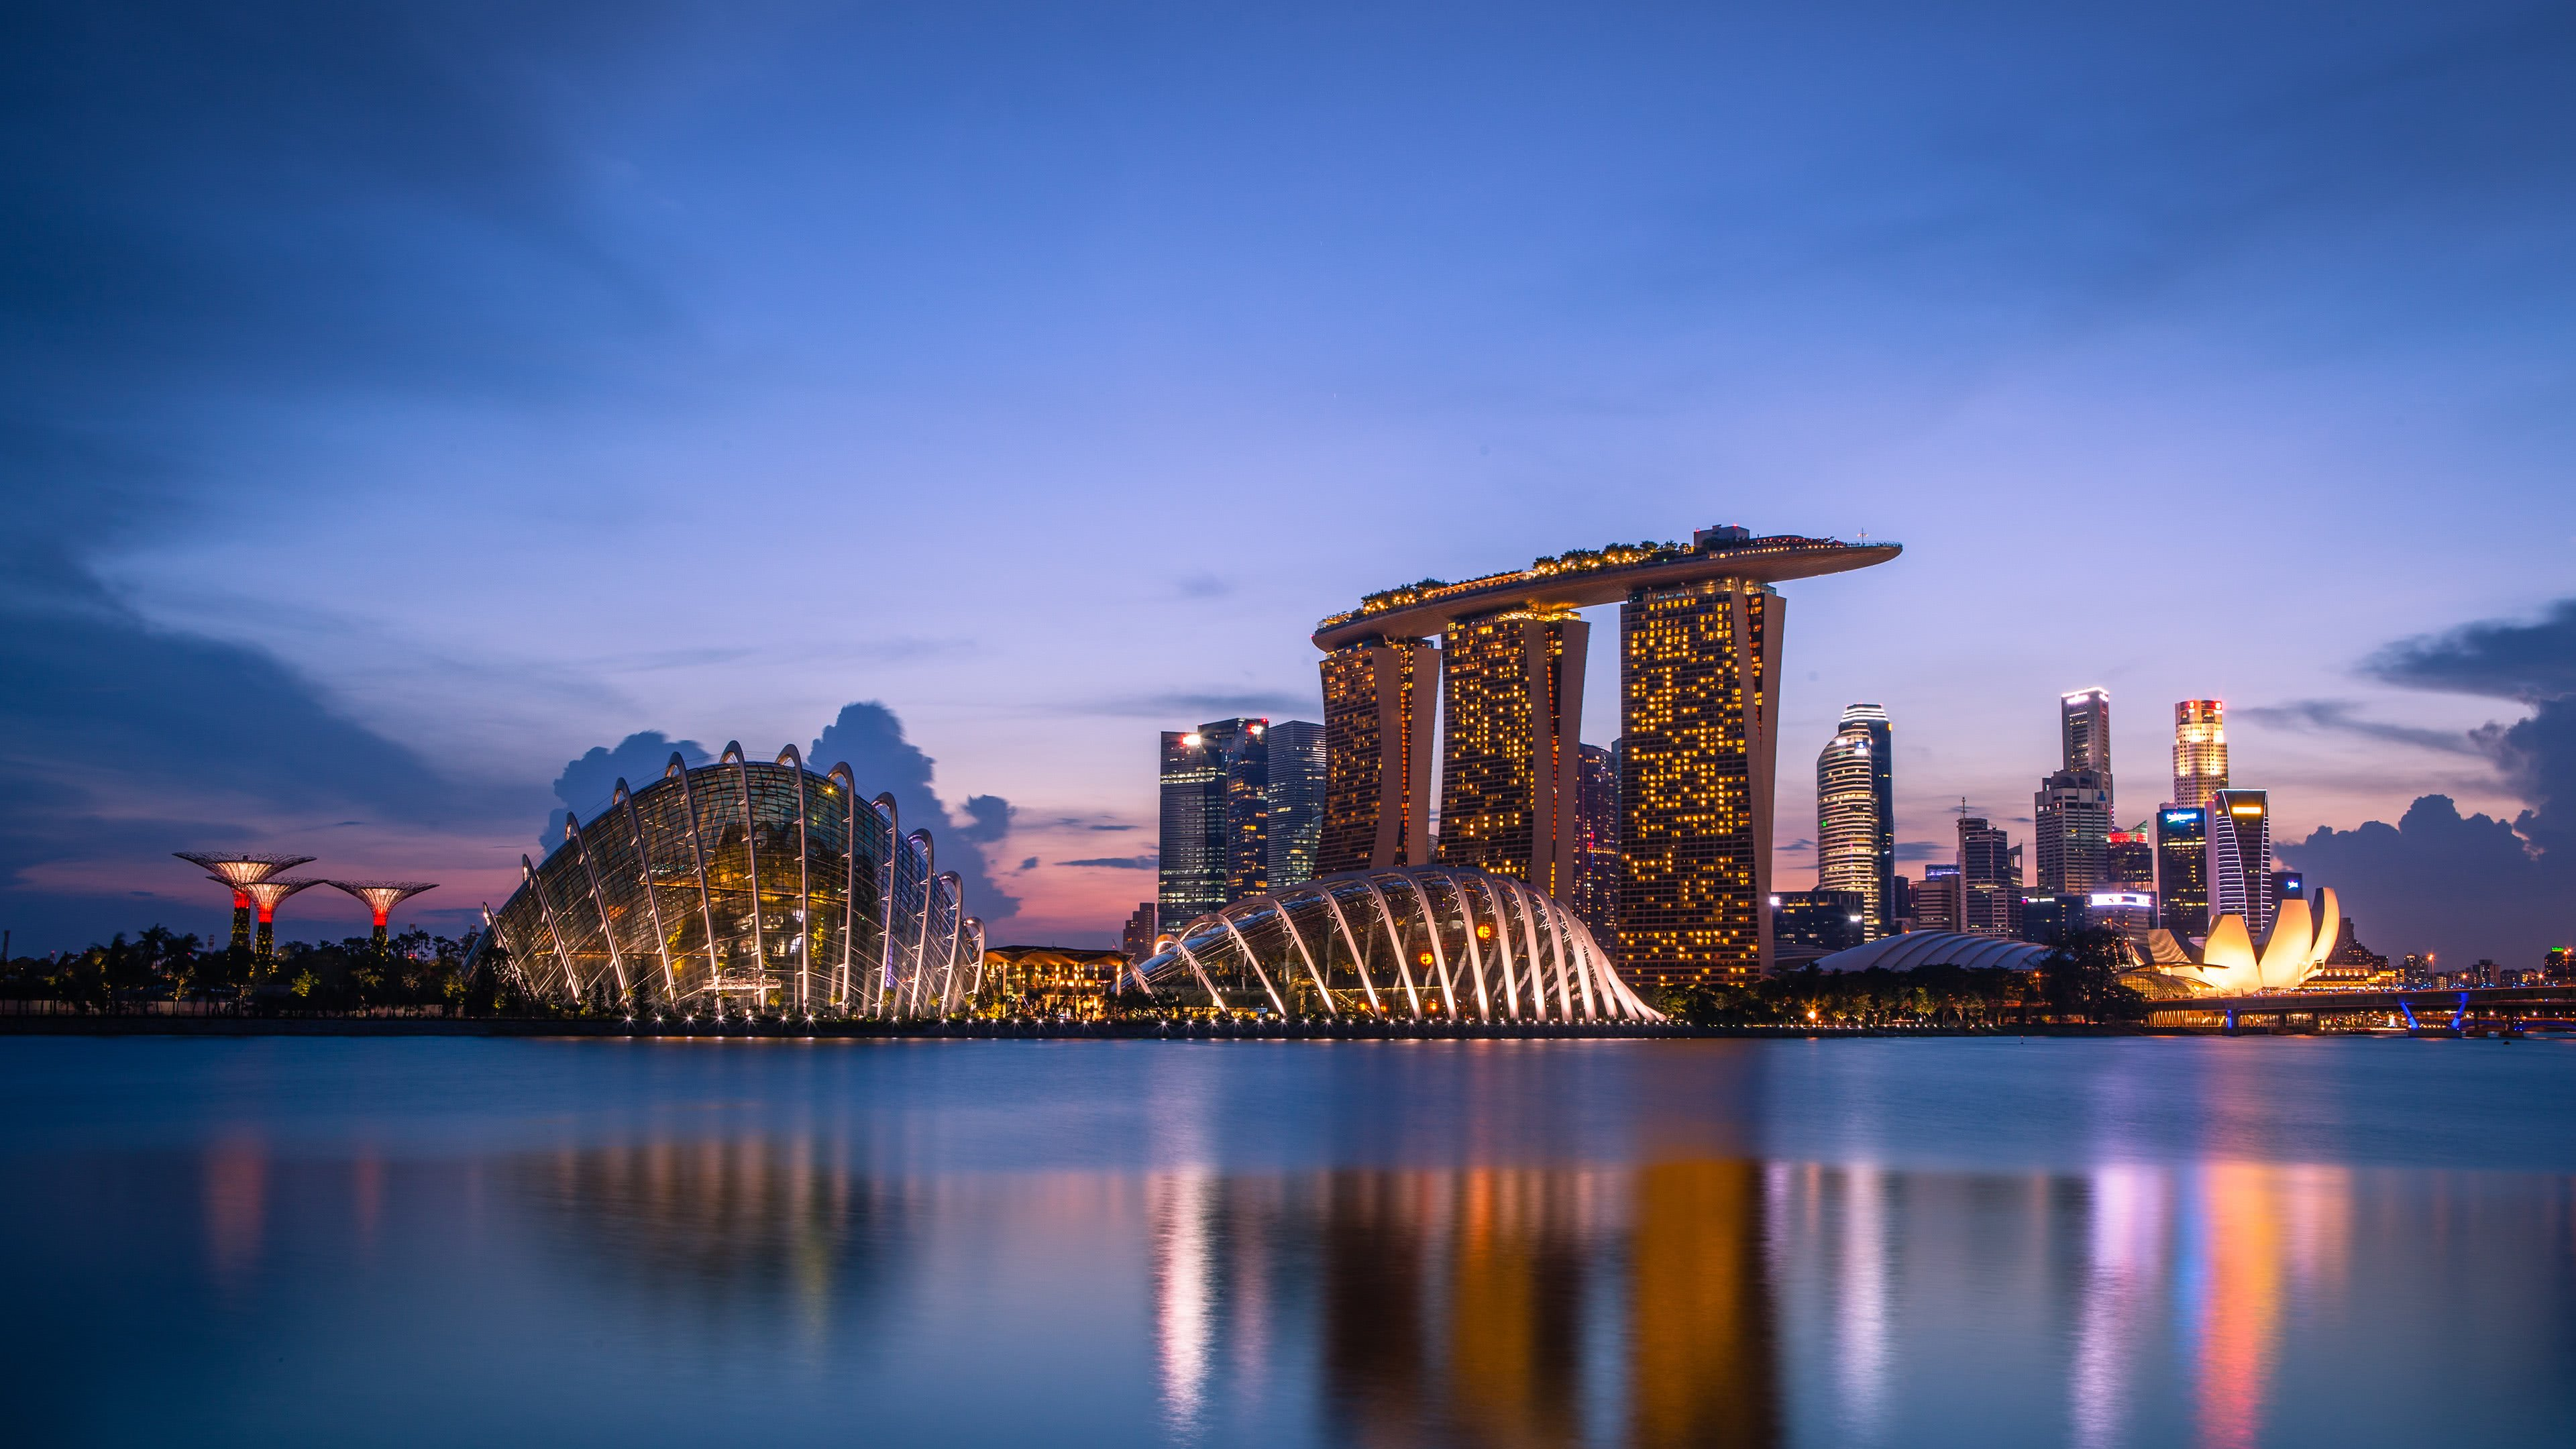 Marina Bay At Night Singapore Uhd 4k Wallpaper Pixelz